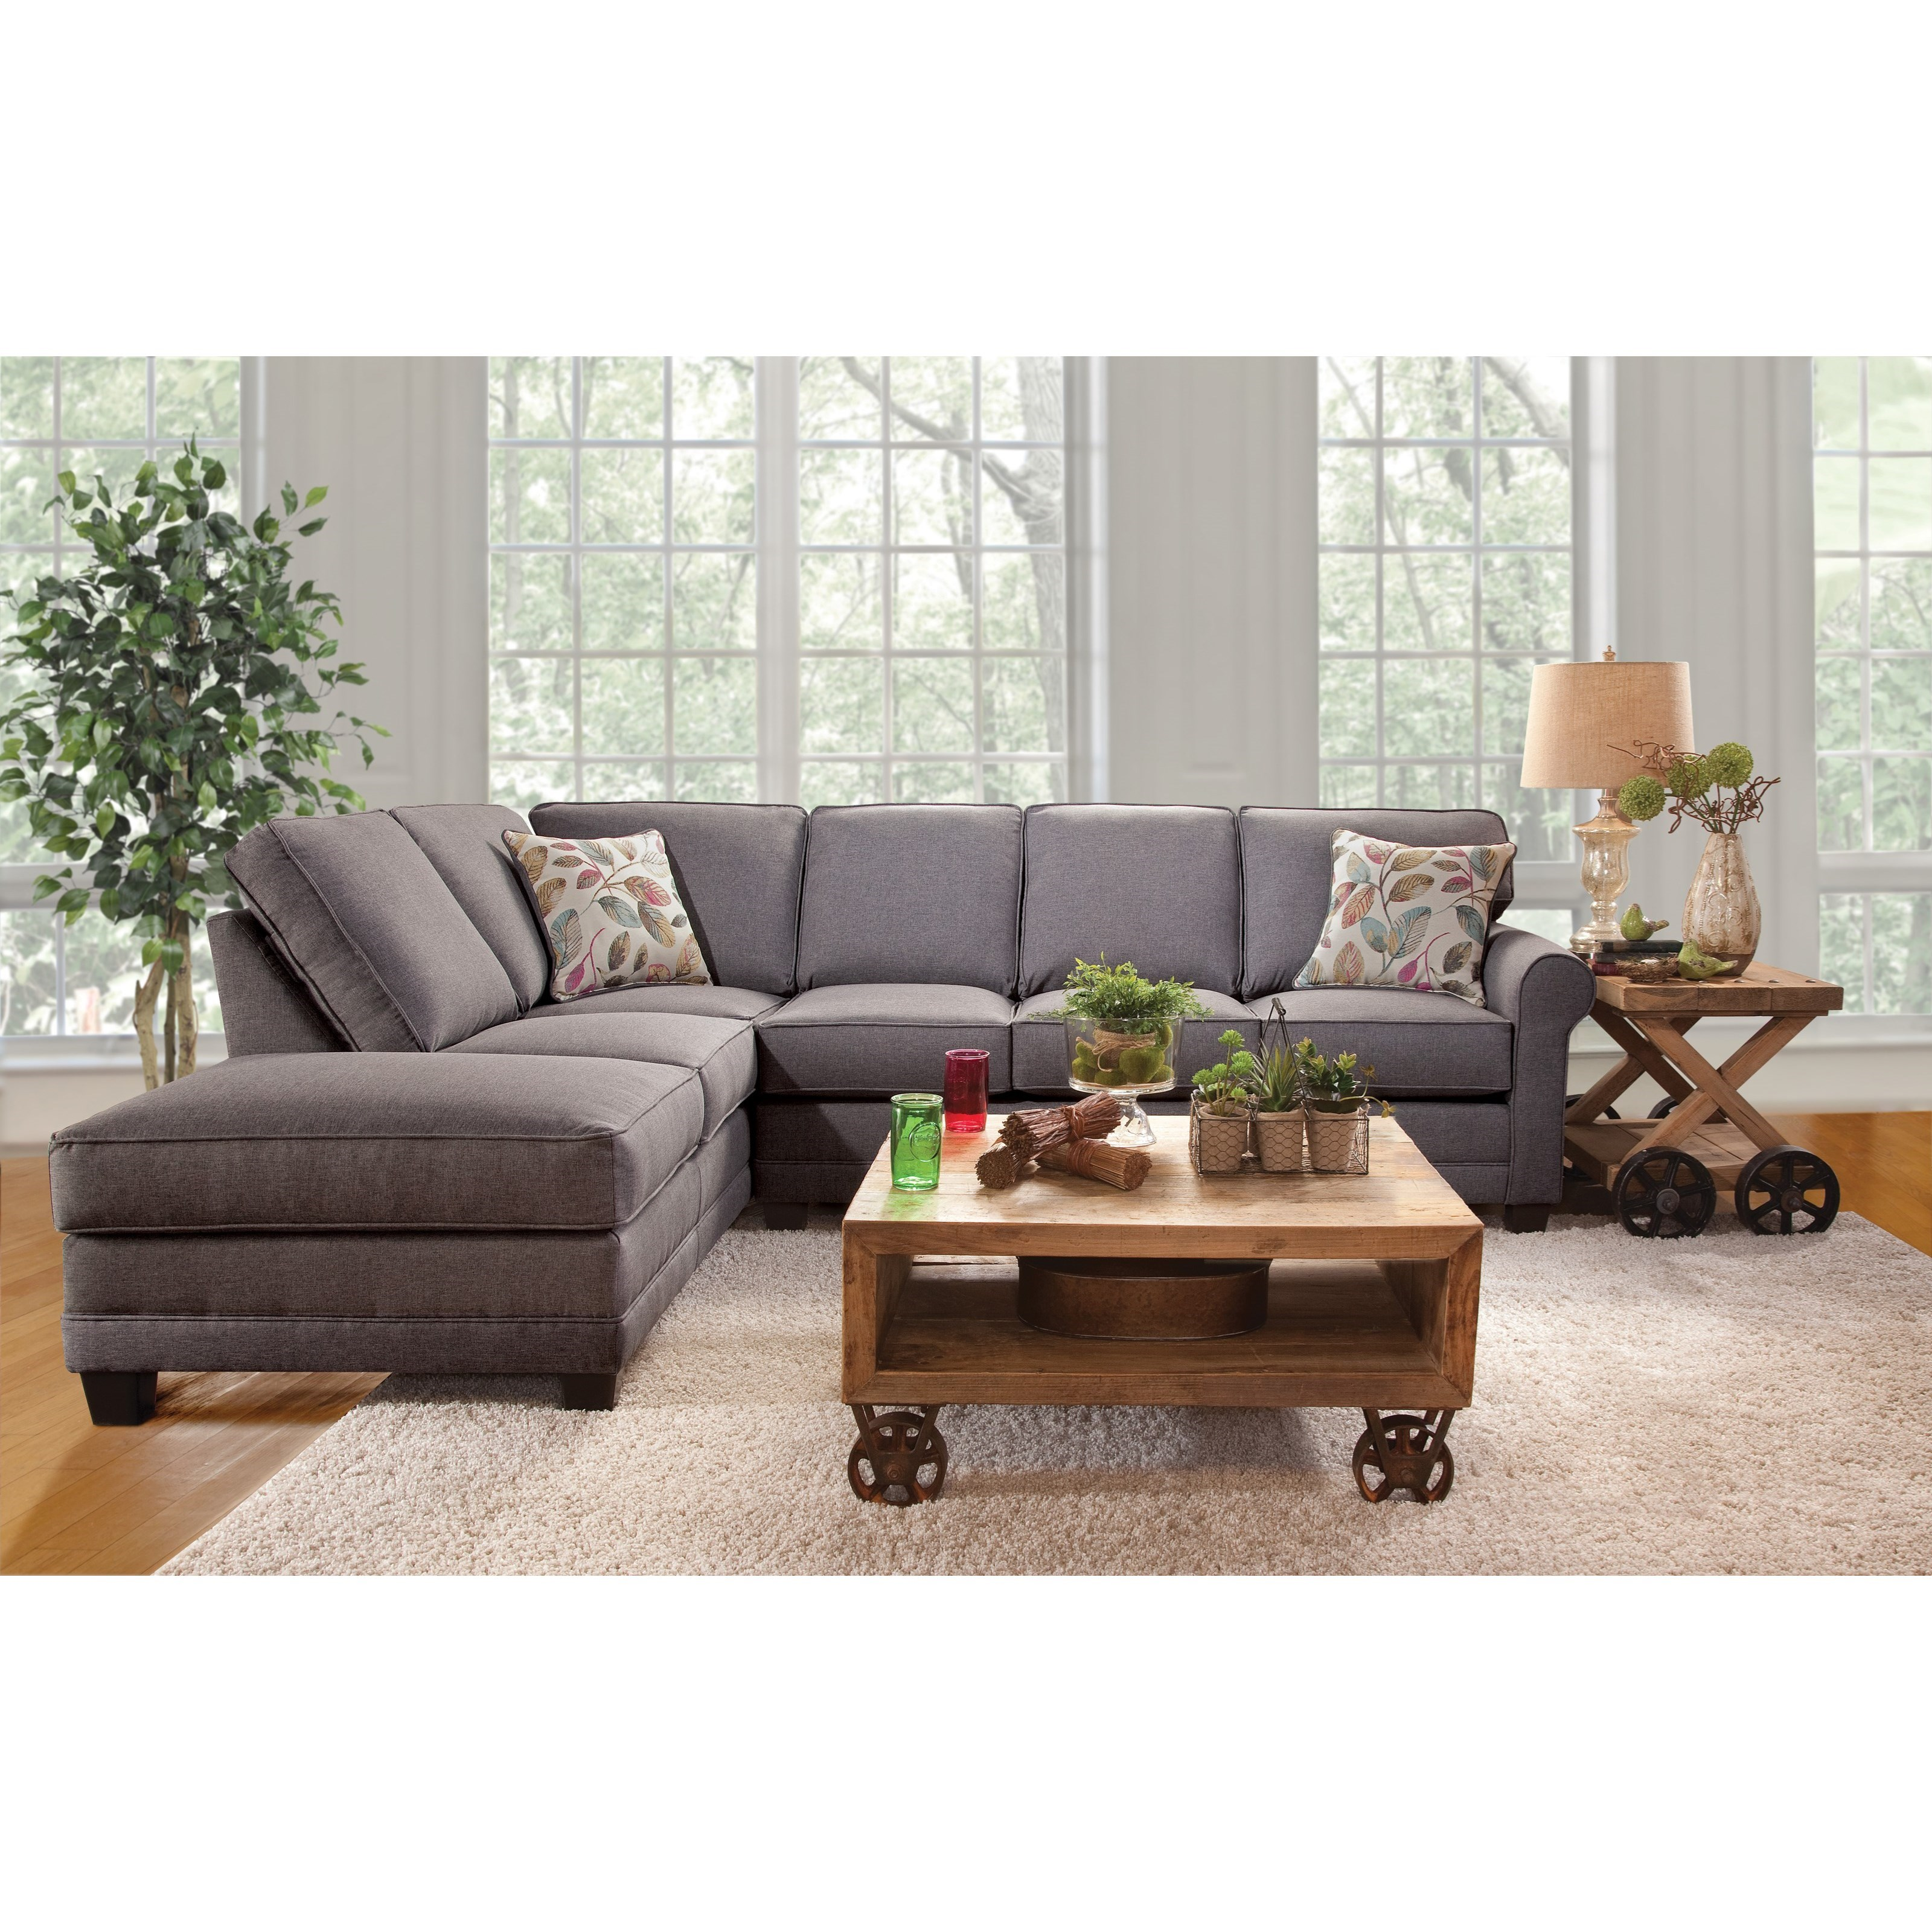 3700 Sectional by Serta Upholstery by Hughes Furniture at Rooms for Less